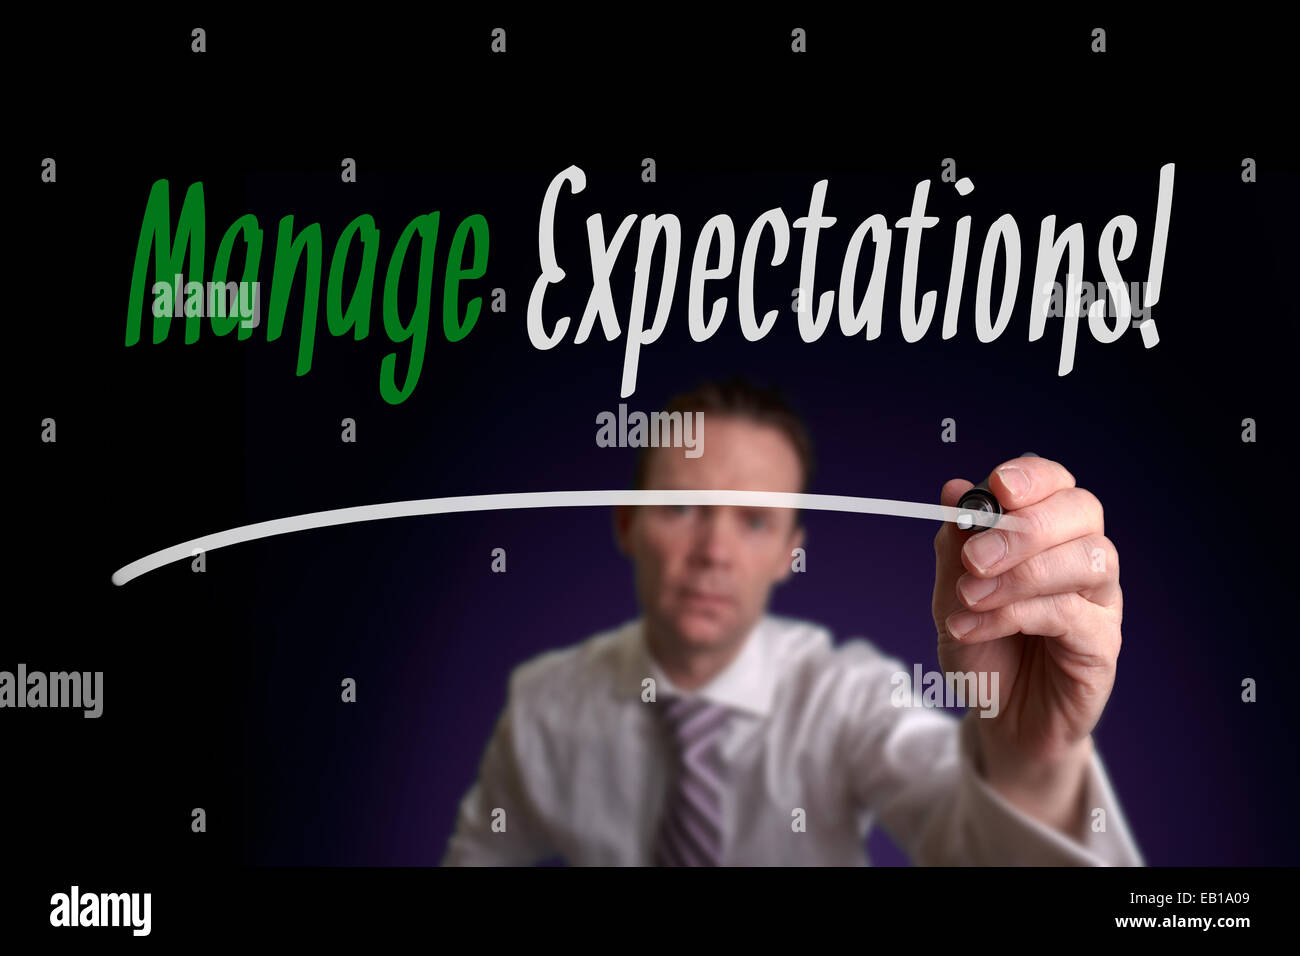 A businessman writing Manage Expectations on a screen. Business Concept. - Stock Image